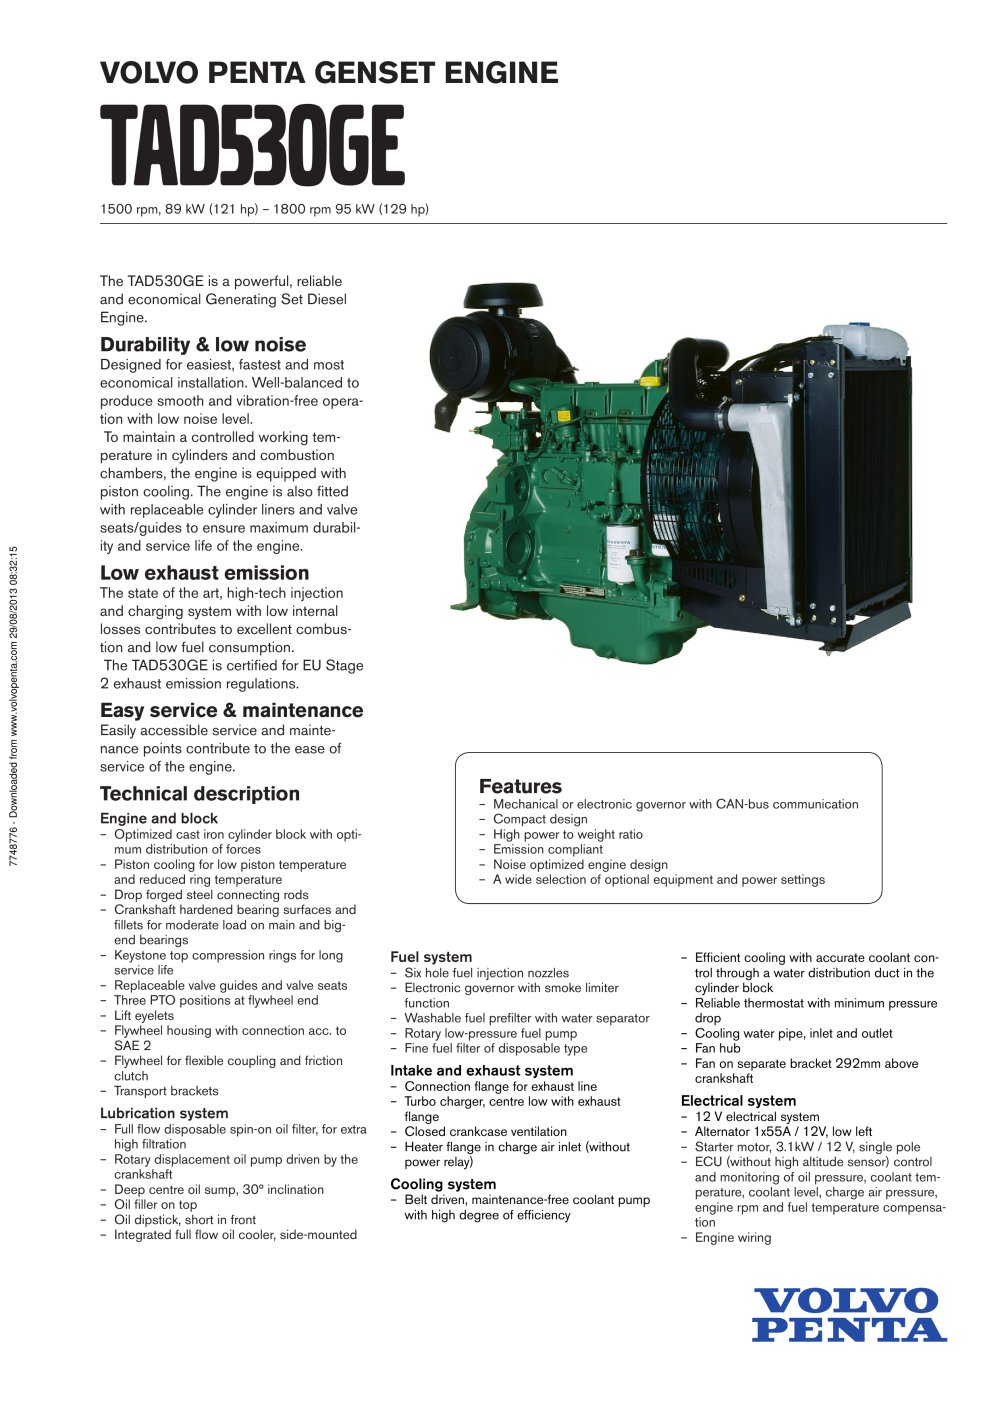 Tad530ge Volvo Penta Pdf Catalogs Technical Documentation Electrical Relay Selection 1 2 Pages